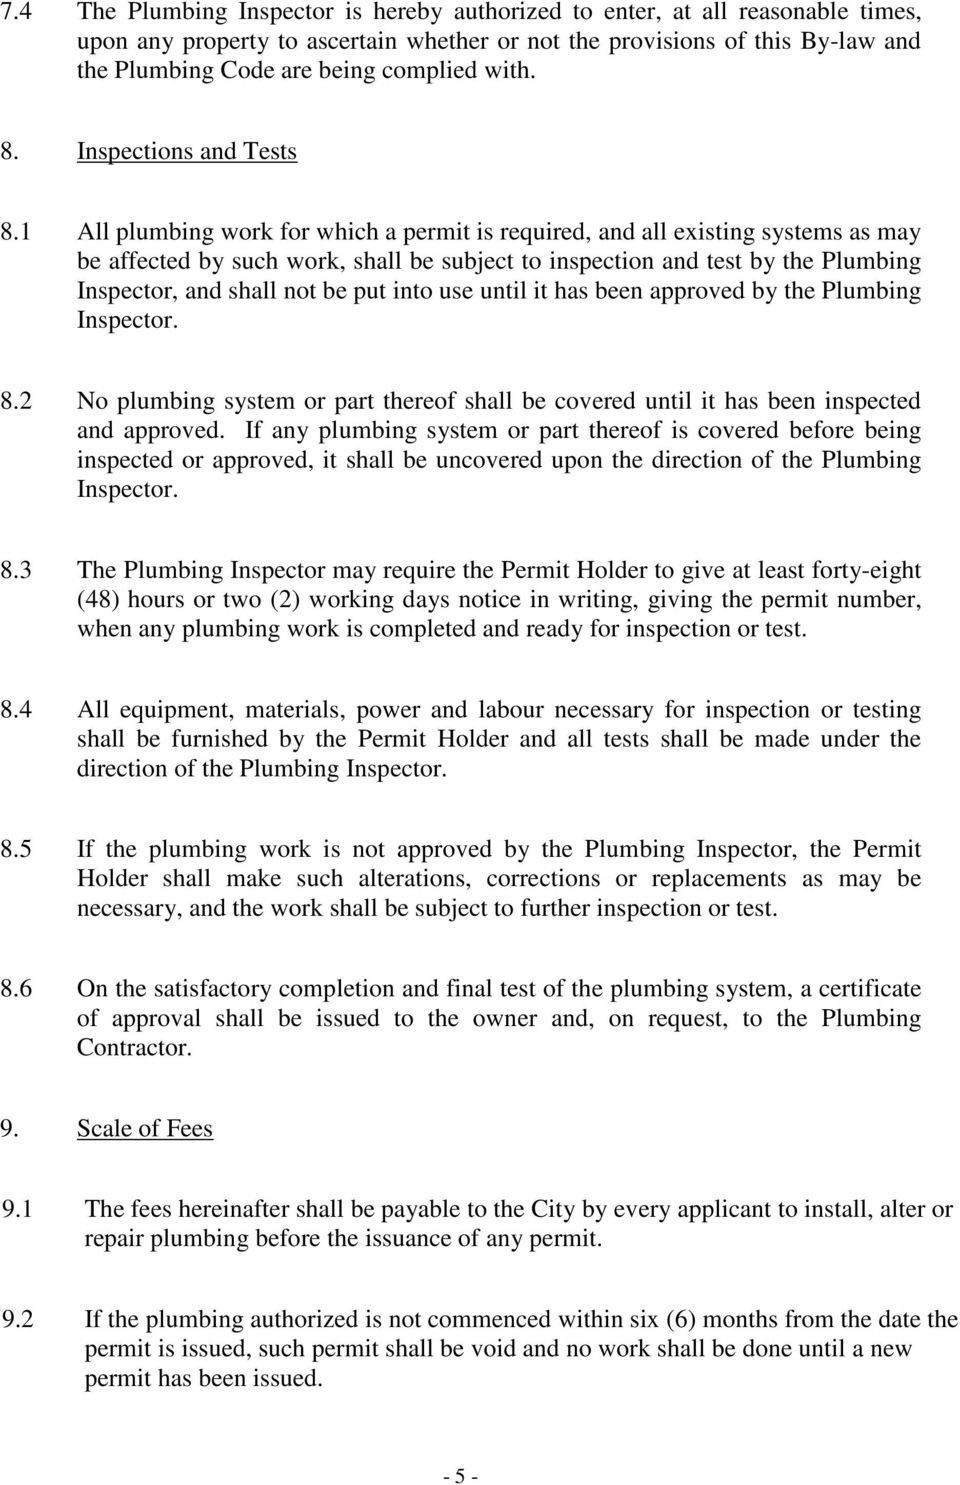 1 All plumbing work for which a permit is required, and all existing systems as may be affected by such work, shall be subject to inspection and test by the Plumbing Inspector, and shall not be put